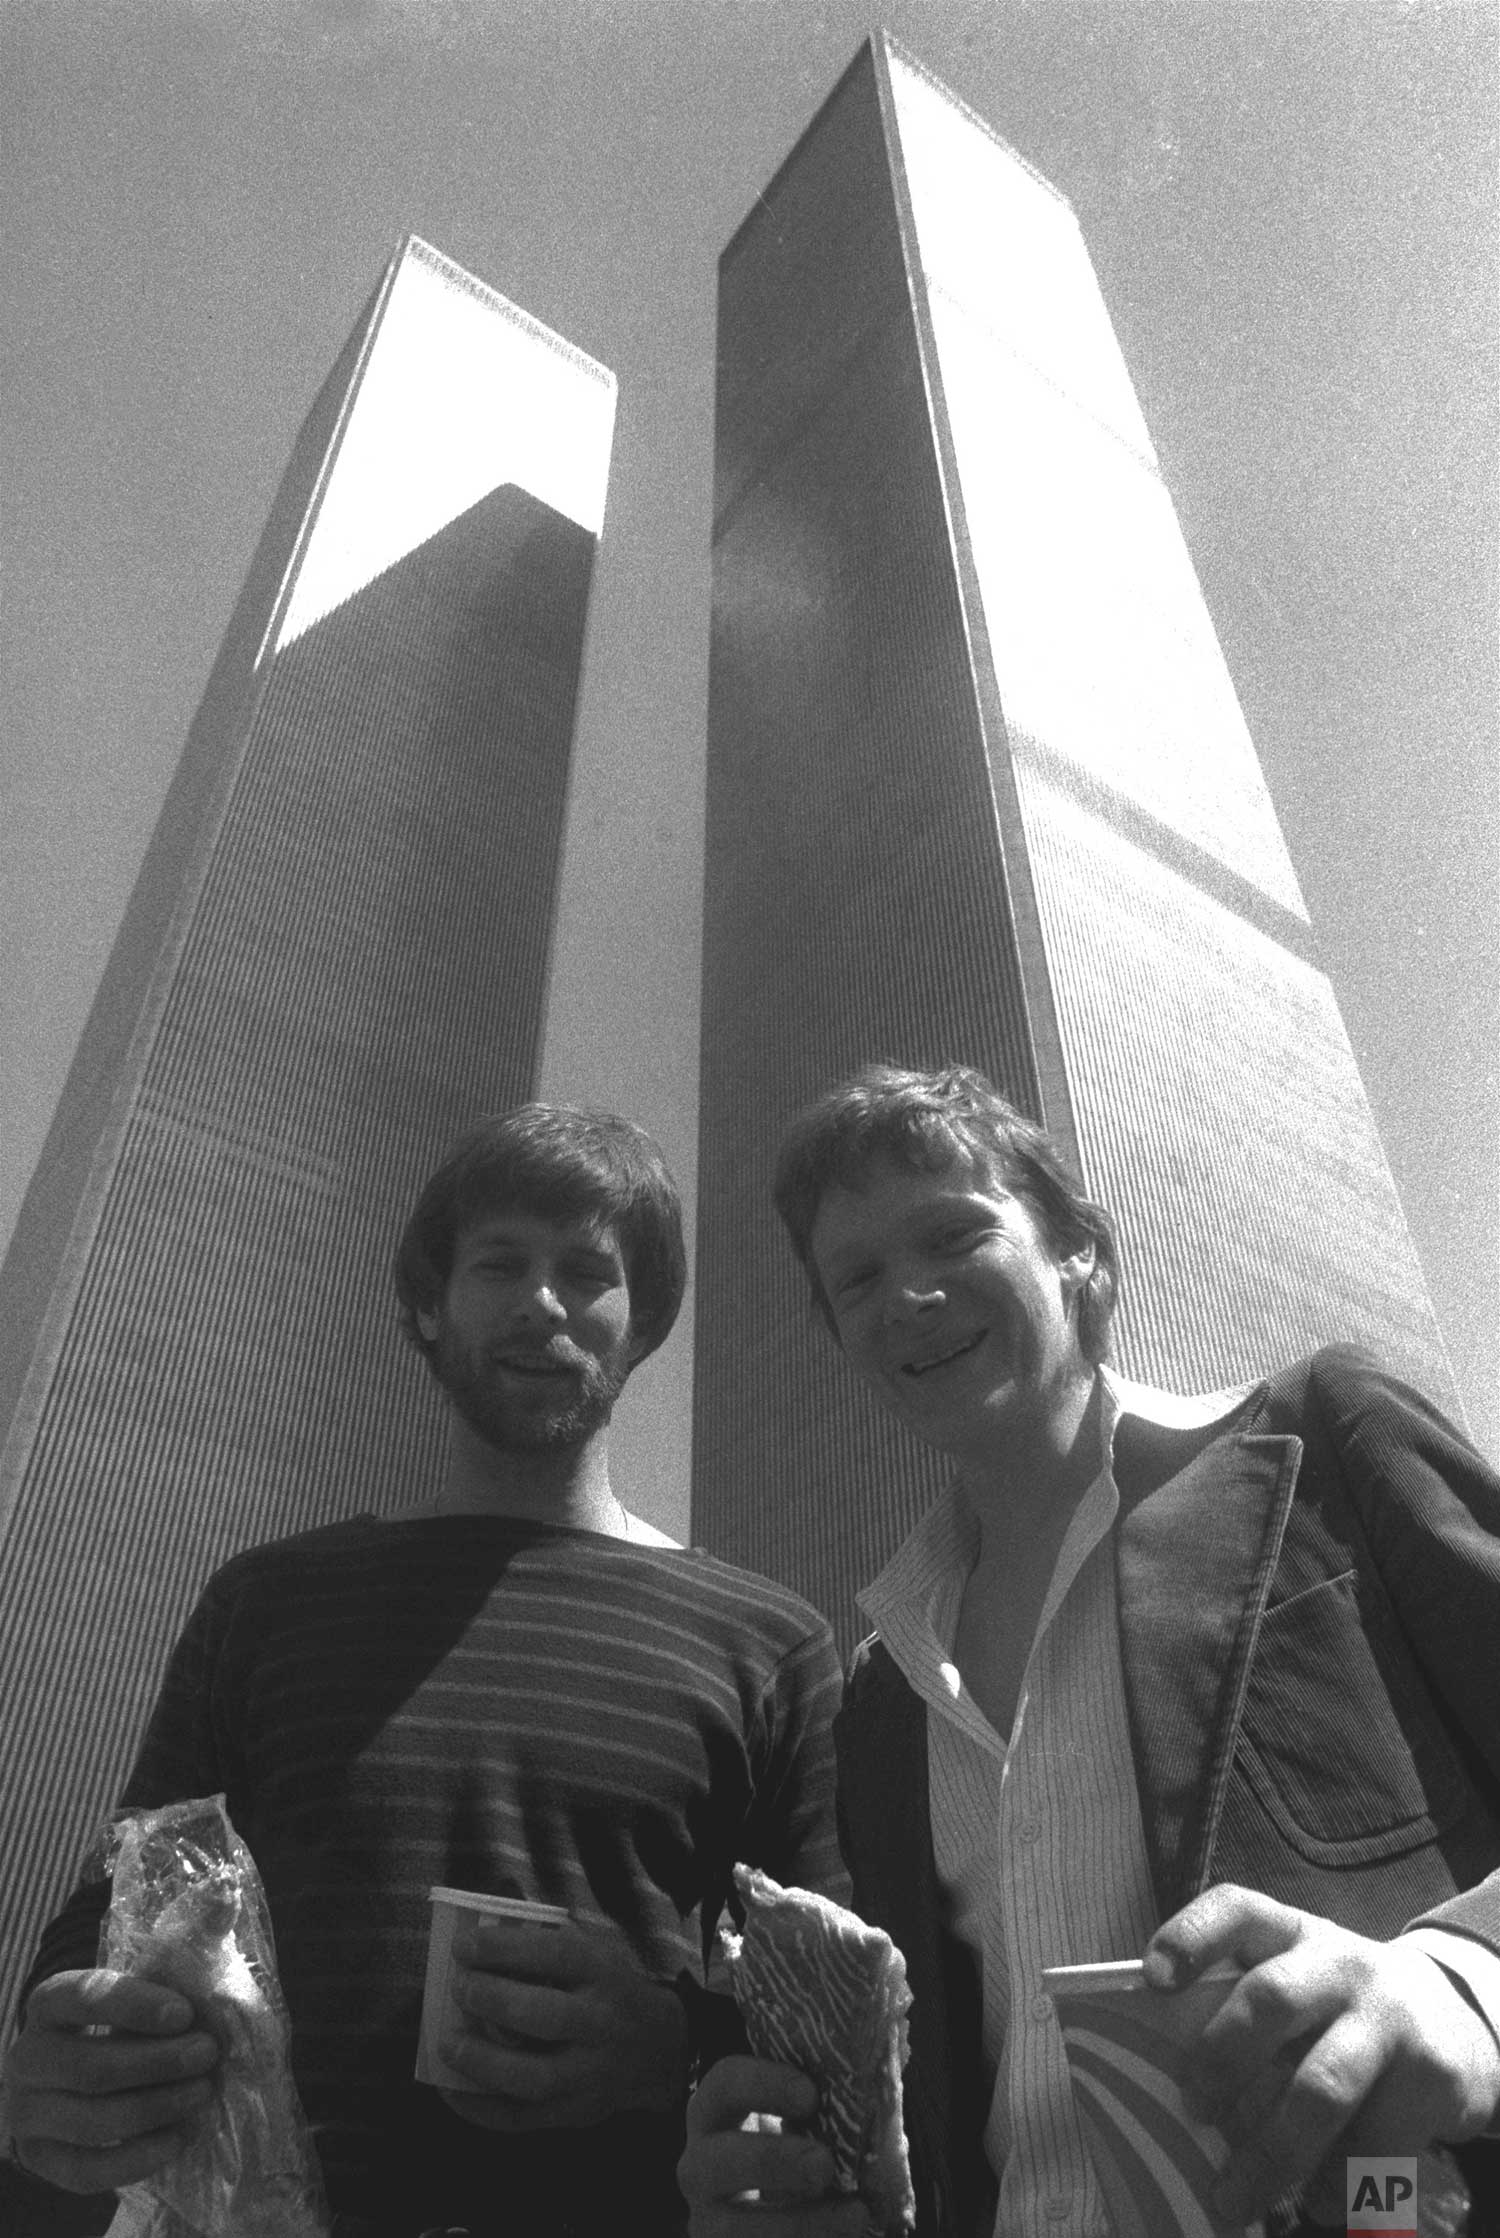 George Willig, left, and Philippe Petit prepare to catch a bite at the base of New York's twin World Trade Center Towers Wednesday, April 12. The two adventurers are more familiar with the skyscrapers from a different perspective; Petit for his tight rope walk between the two buildings, and Willig for his facade-climbing journey up the 110-story building last year. (AP Photo/Dave Pickoff)